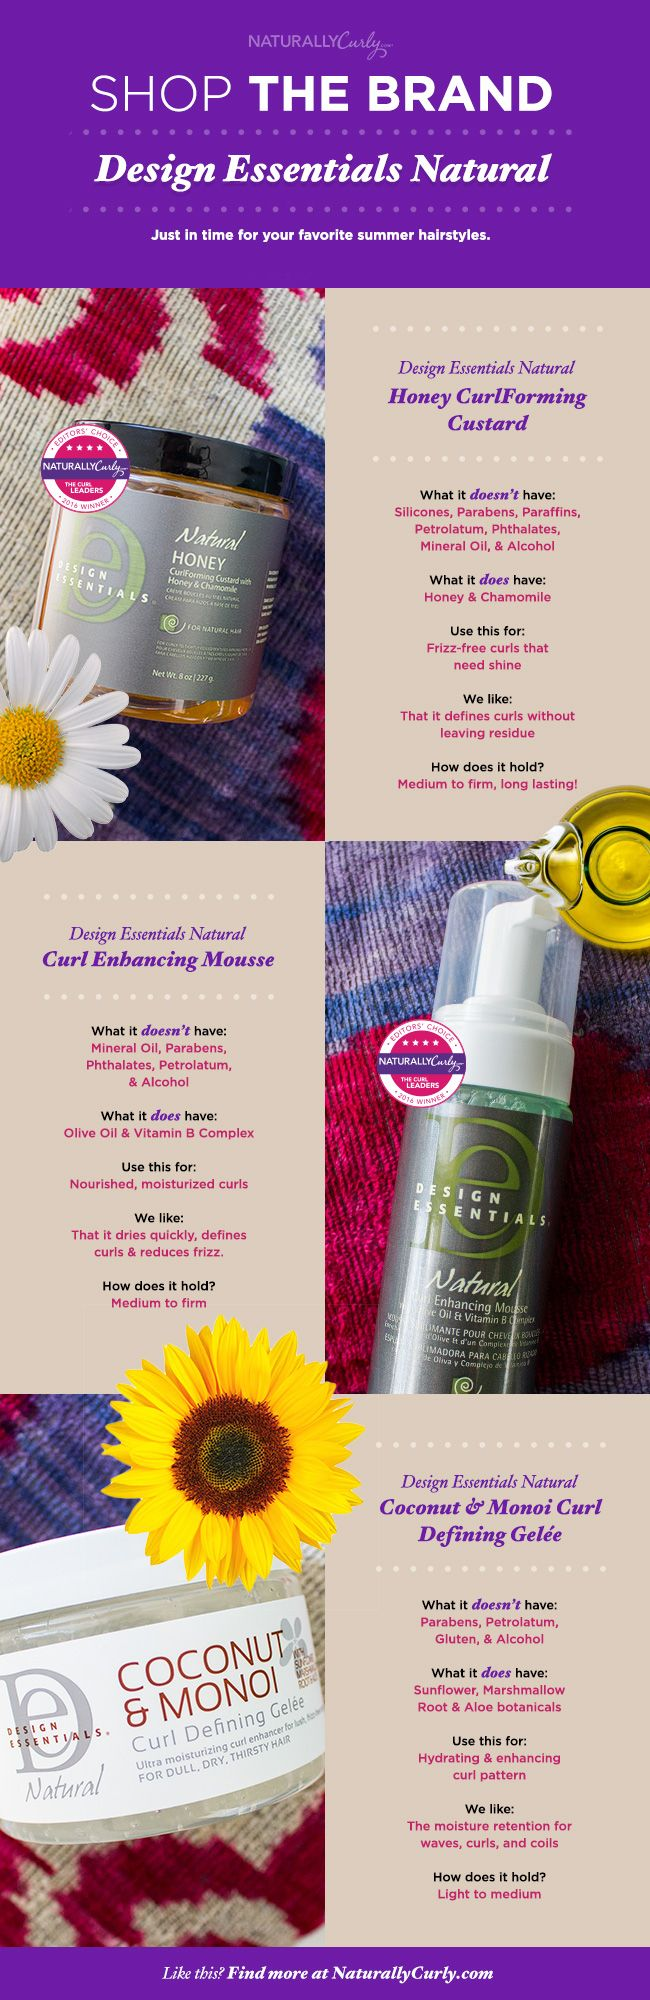 278 best must have products images on pinterest gone for good this just in 3 summertime styling tips for humidity and frizz sufferers home designinfographickoreannatural